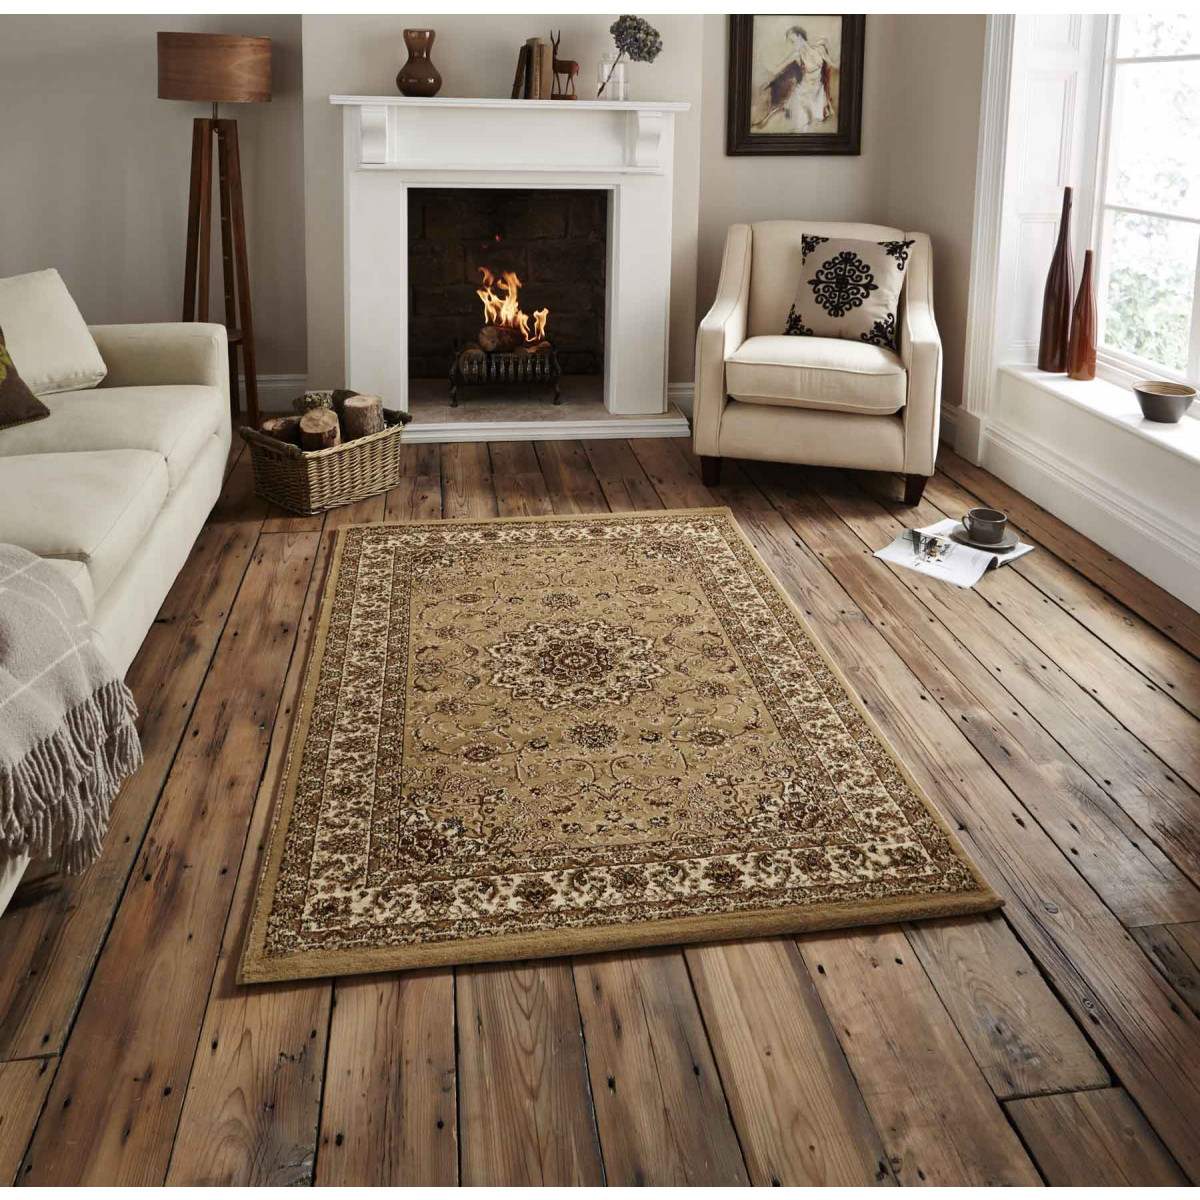 How to extend the life of a rug?